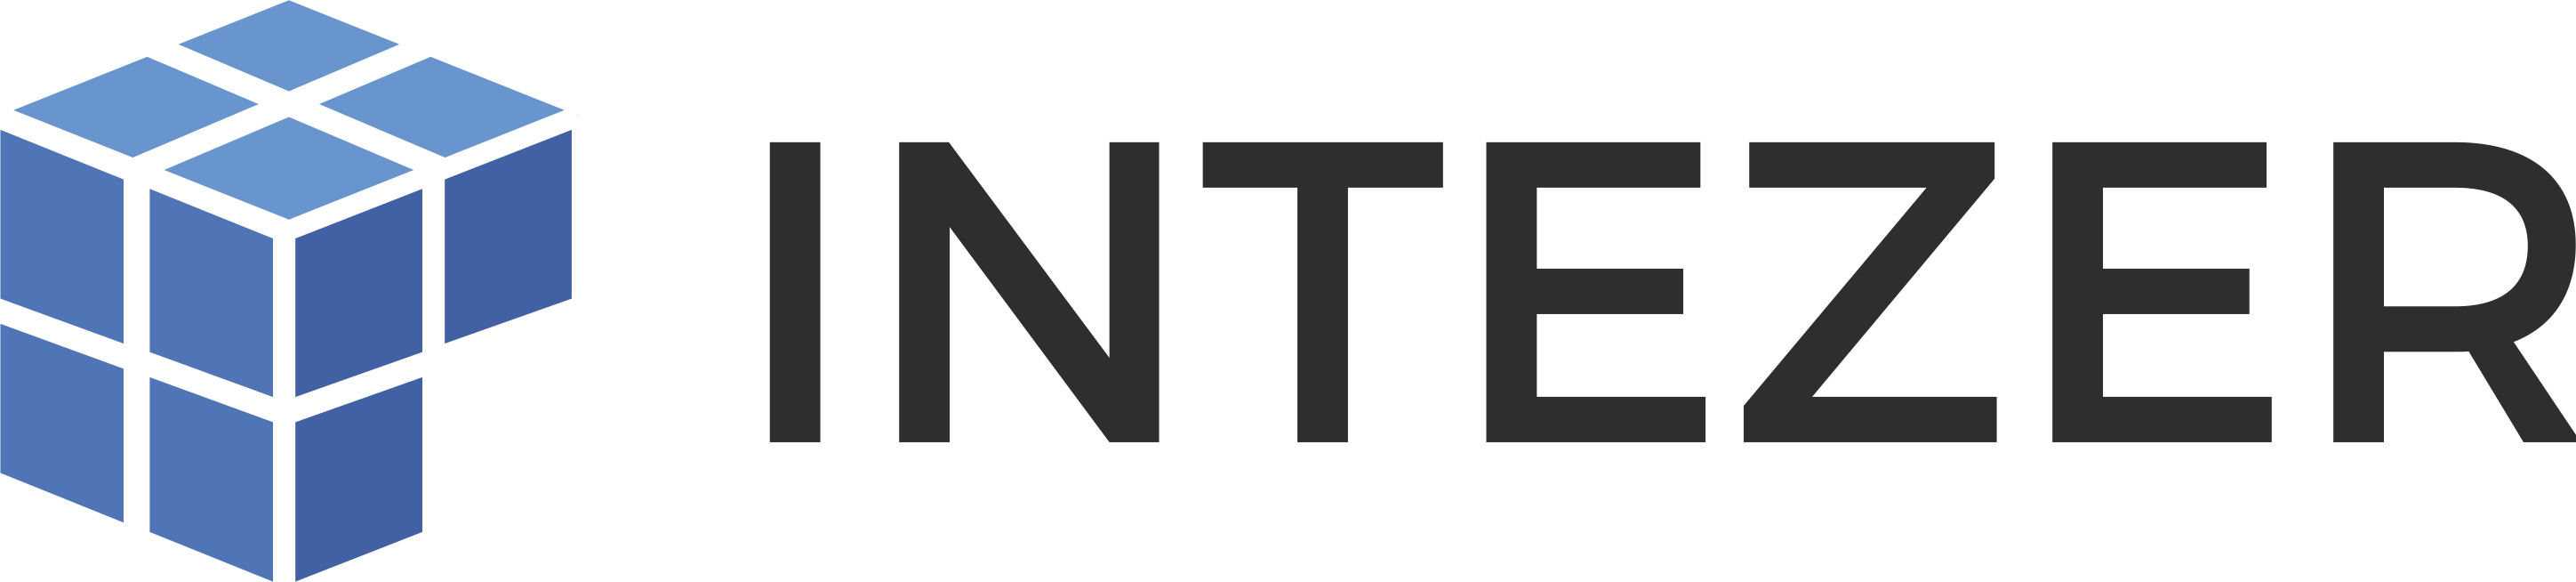 Intezer Logo